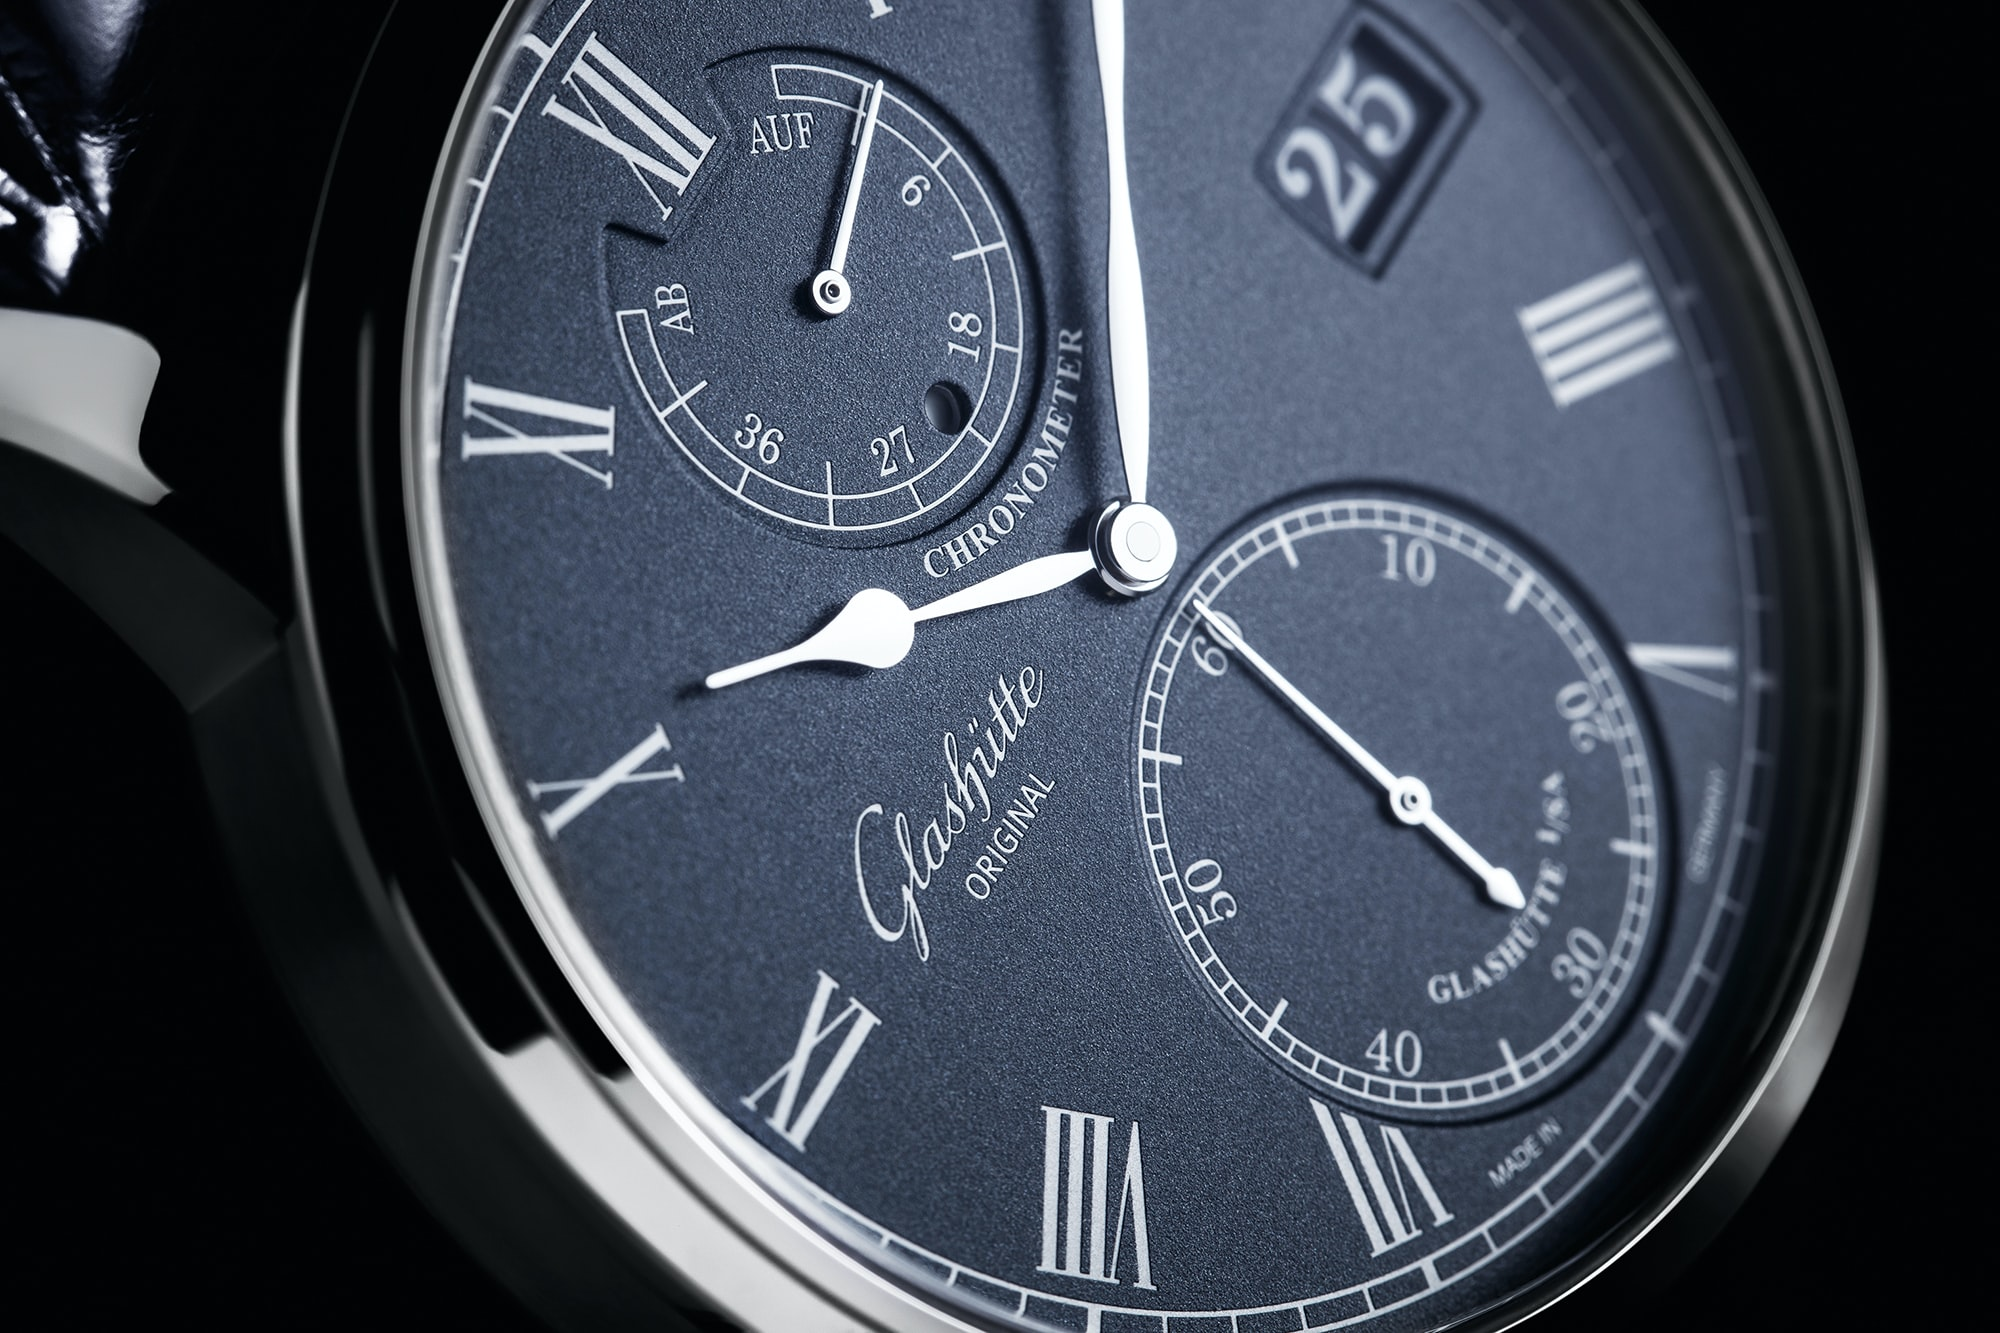 Glashutte Original Senator Chronometer Introducing: The New Glashutte Original Senator Chronometer, With A Dark Blue Dial Introducing: The New Glashutte Original Senator Chronometer, With A Dark Blue Dial 4